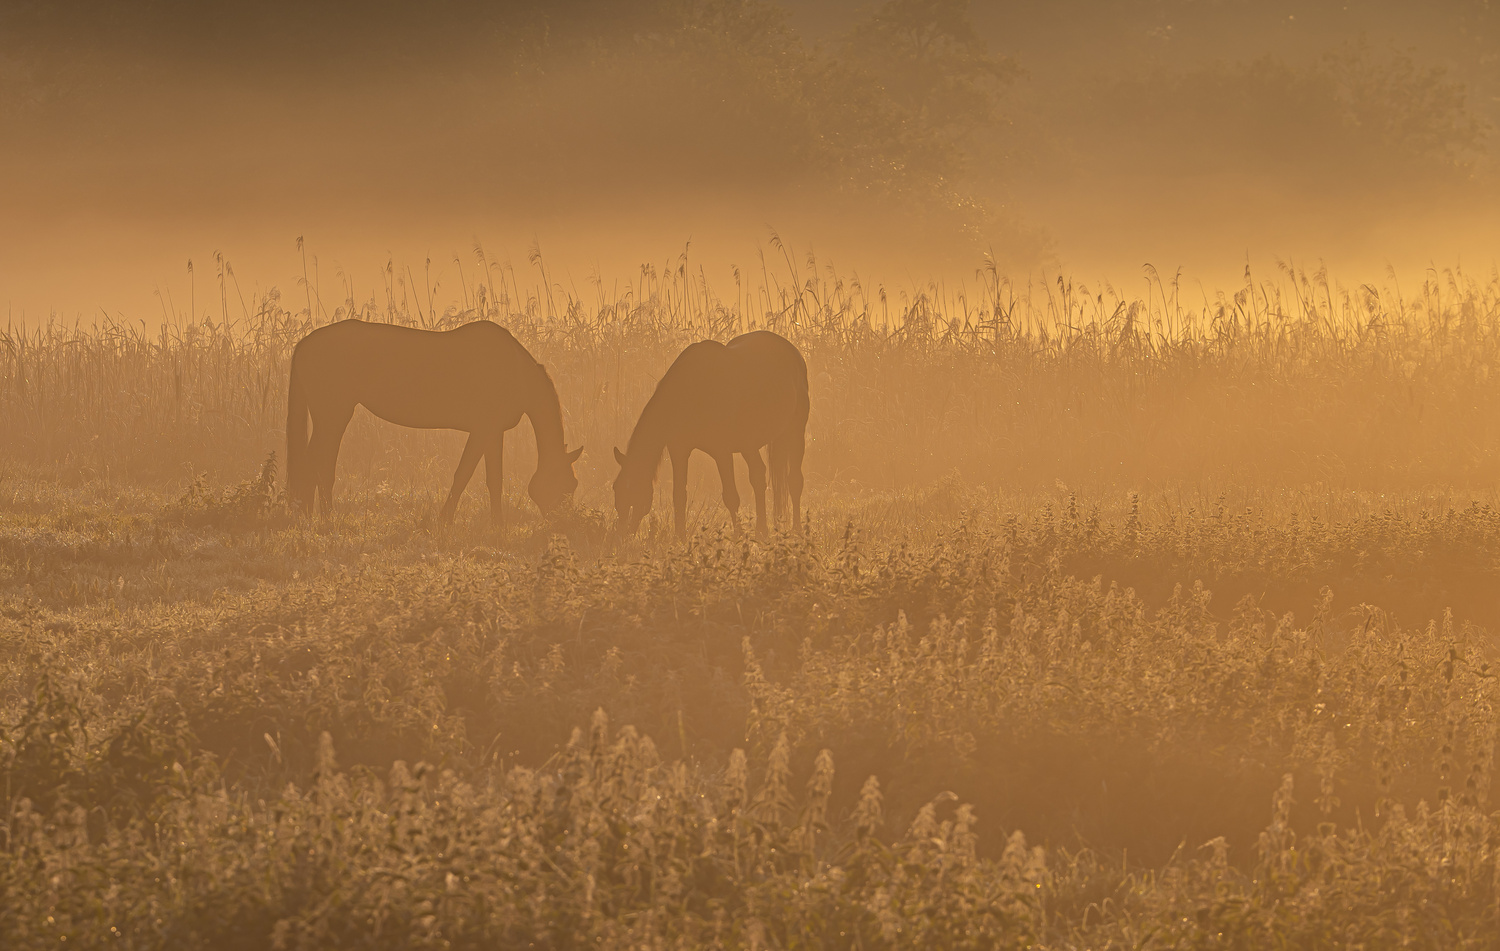 Horses in early morning sun by Torsten Sasse